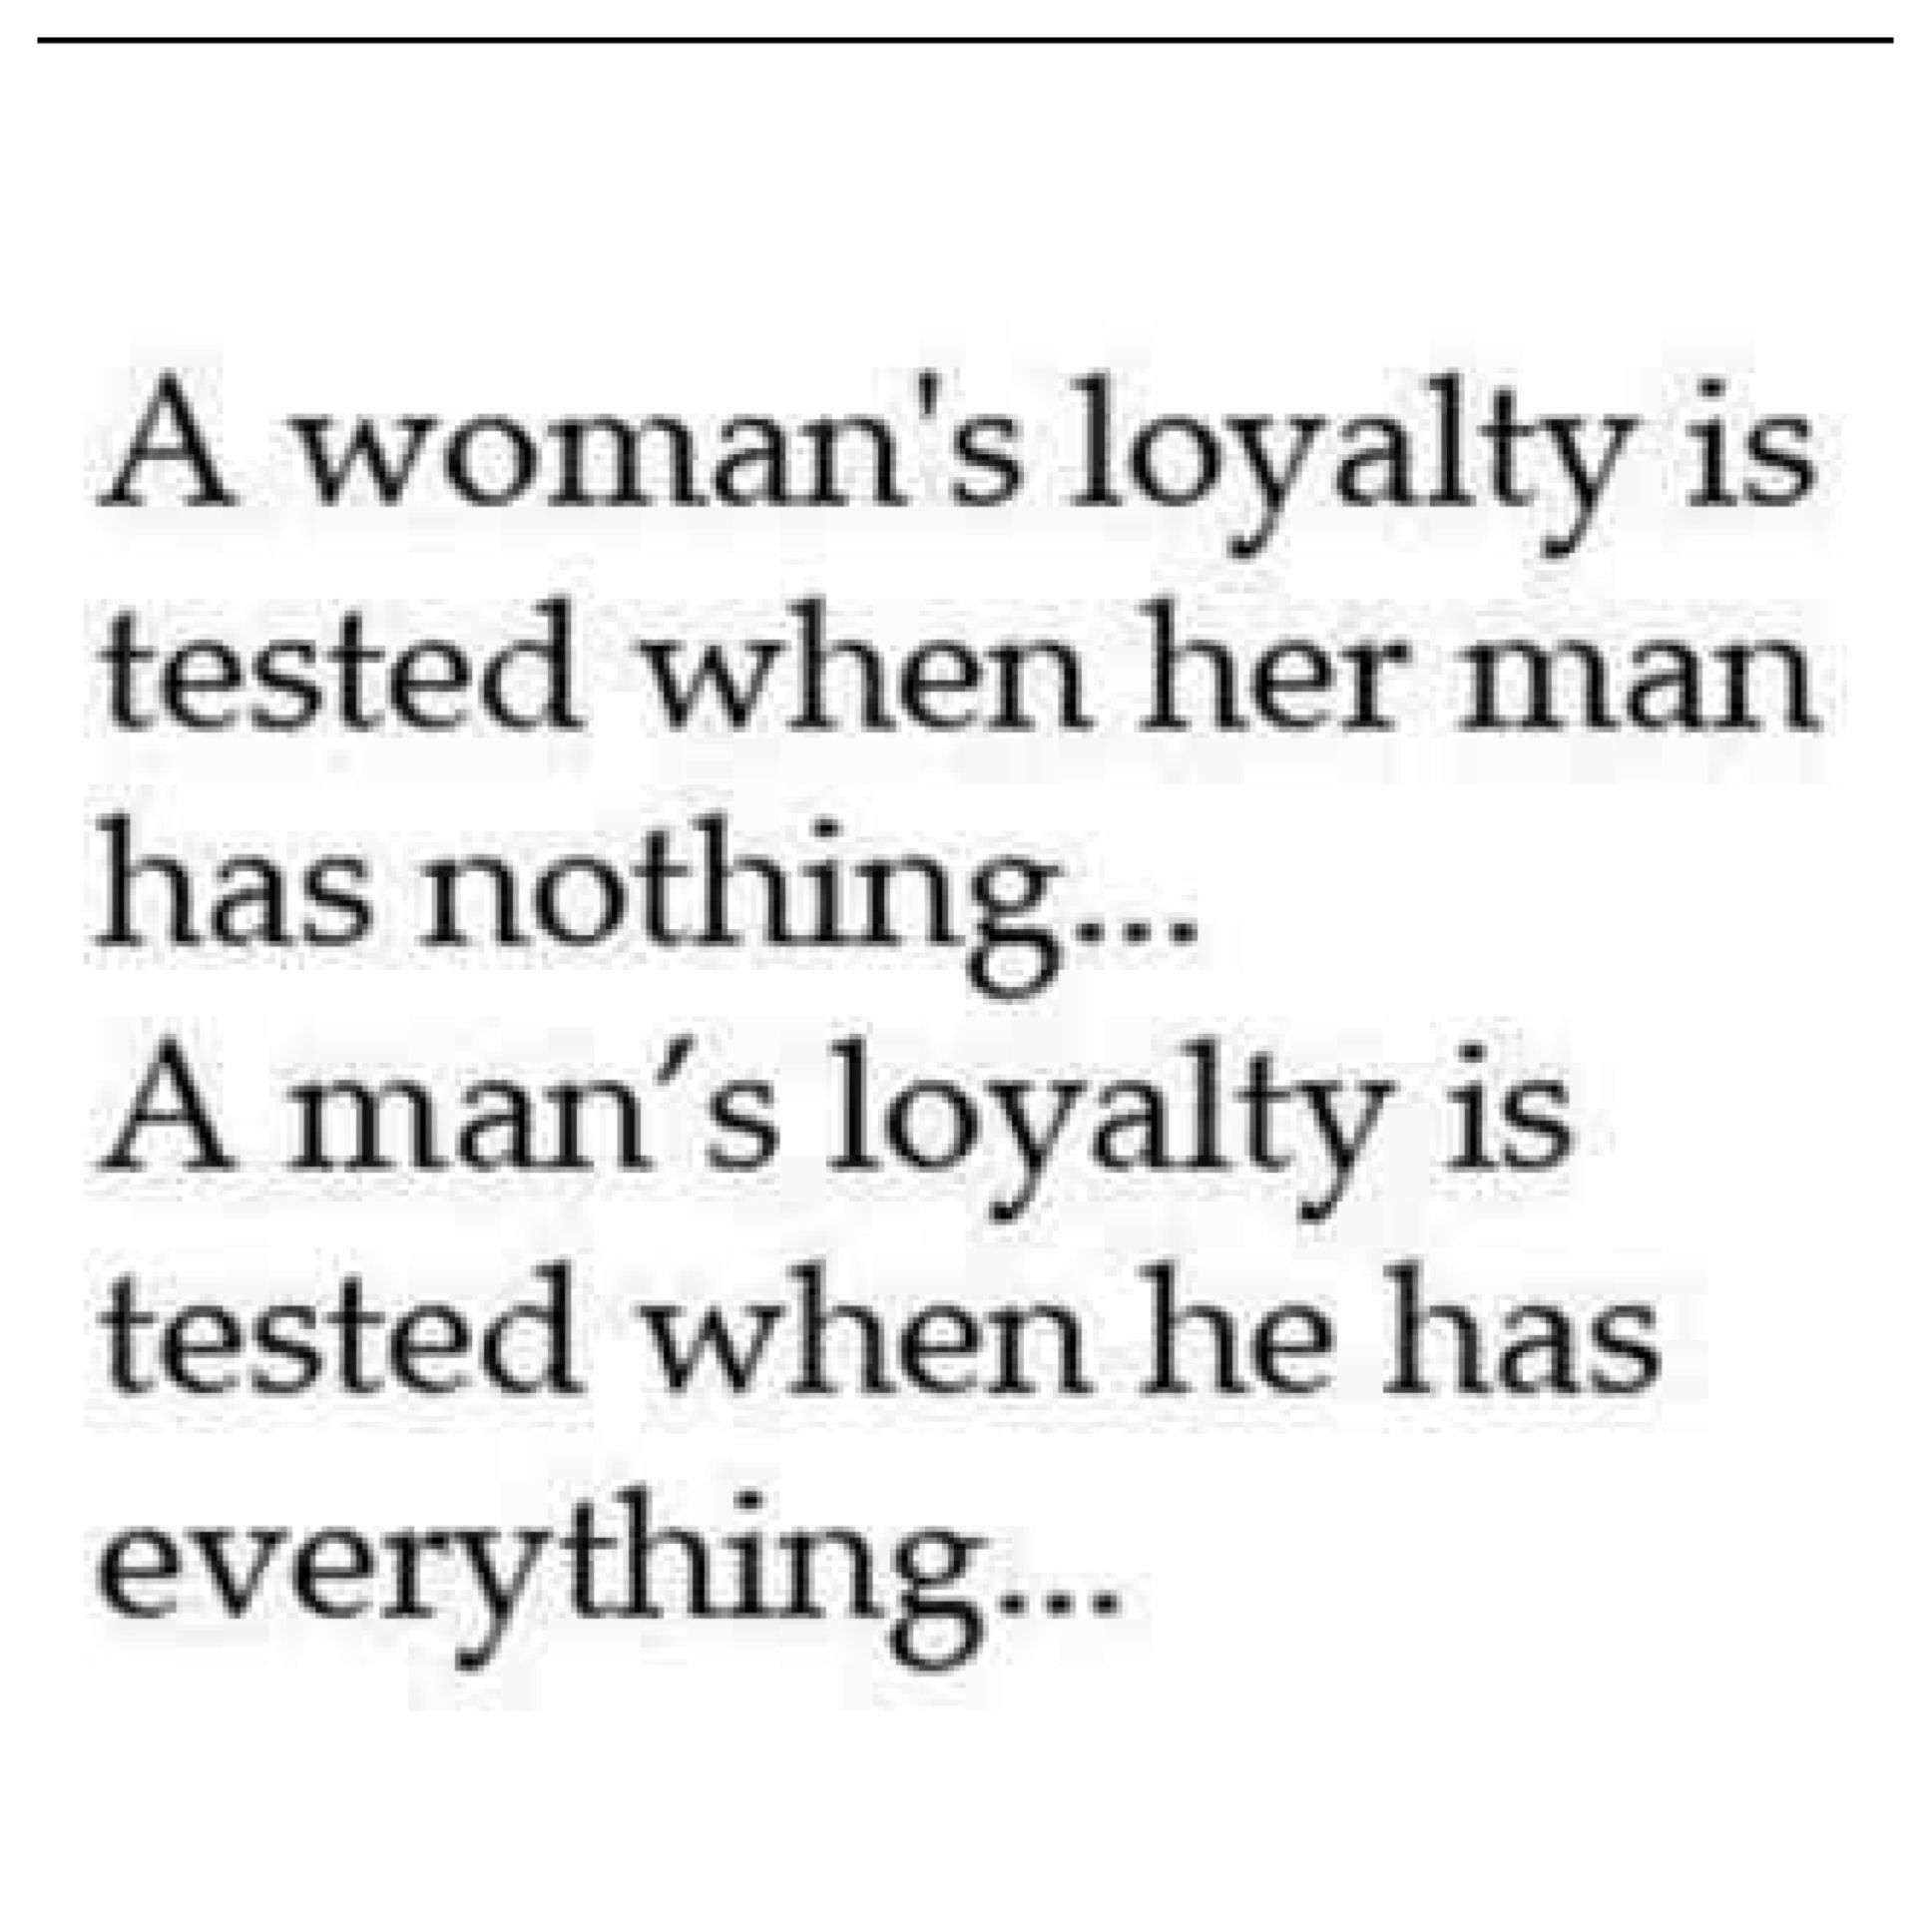 Designs quotes about loyalty quotes about loyalty quotes about loyalty -  3 Men Humorloyalty Quotestrue